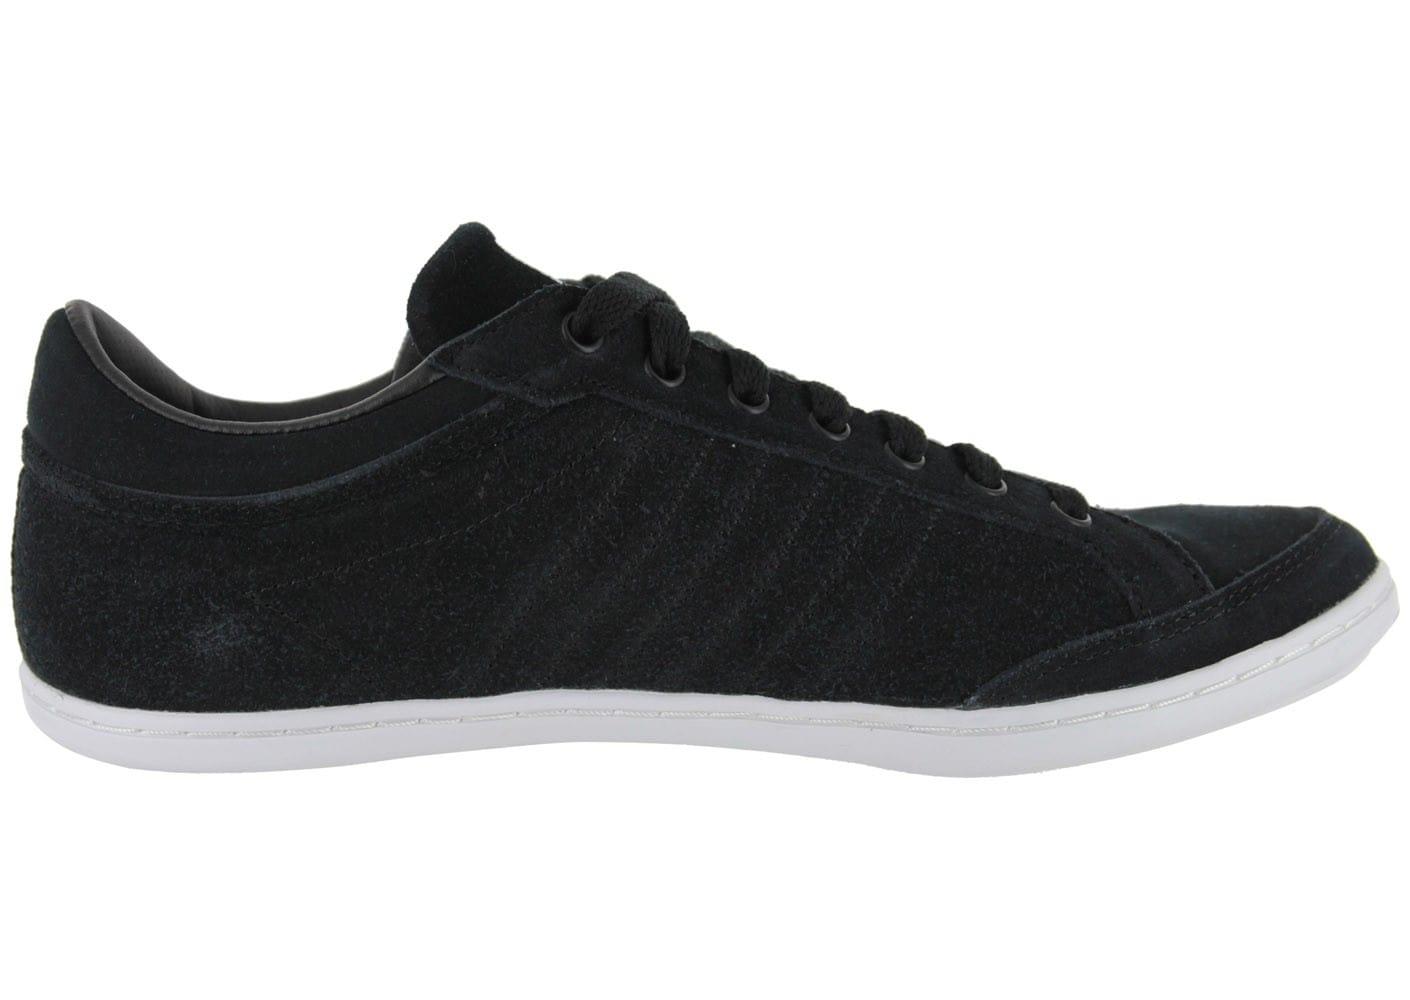 adidas Plimcana Low Noir Chaussures Baskets homme Chausport